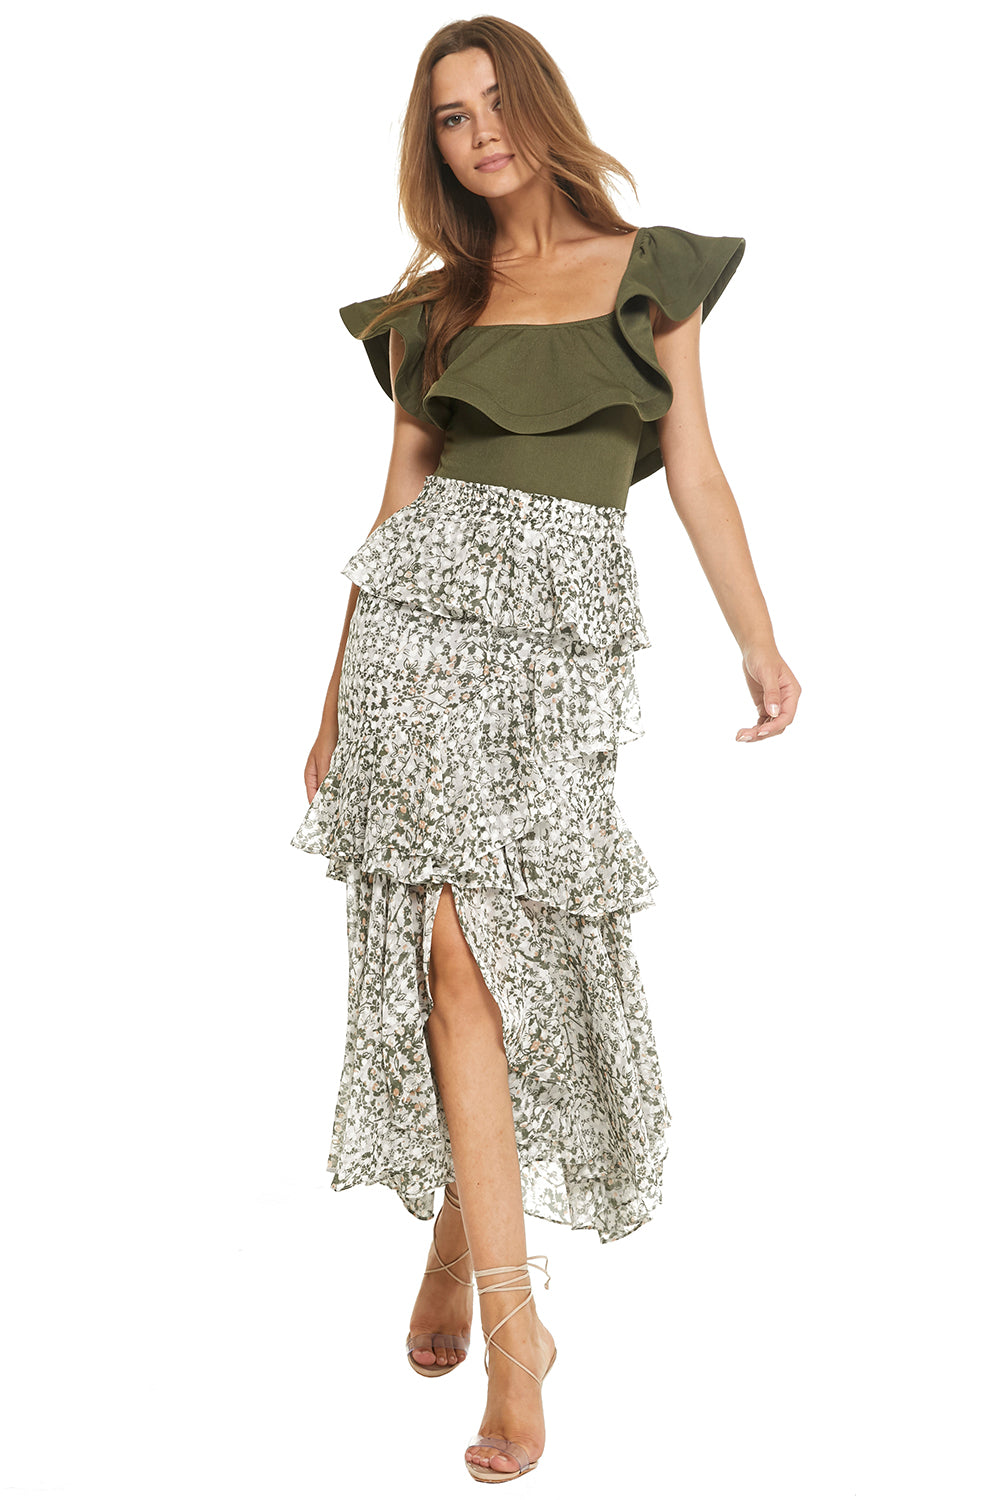 JOSEVA SKIRT - PRE-ORDER - MISA Los Angeles